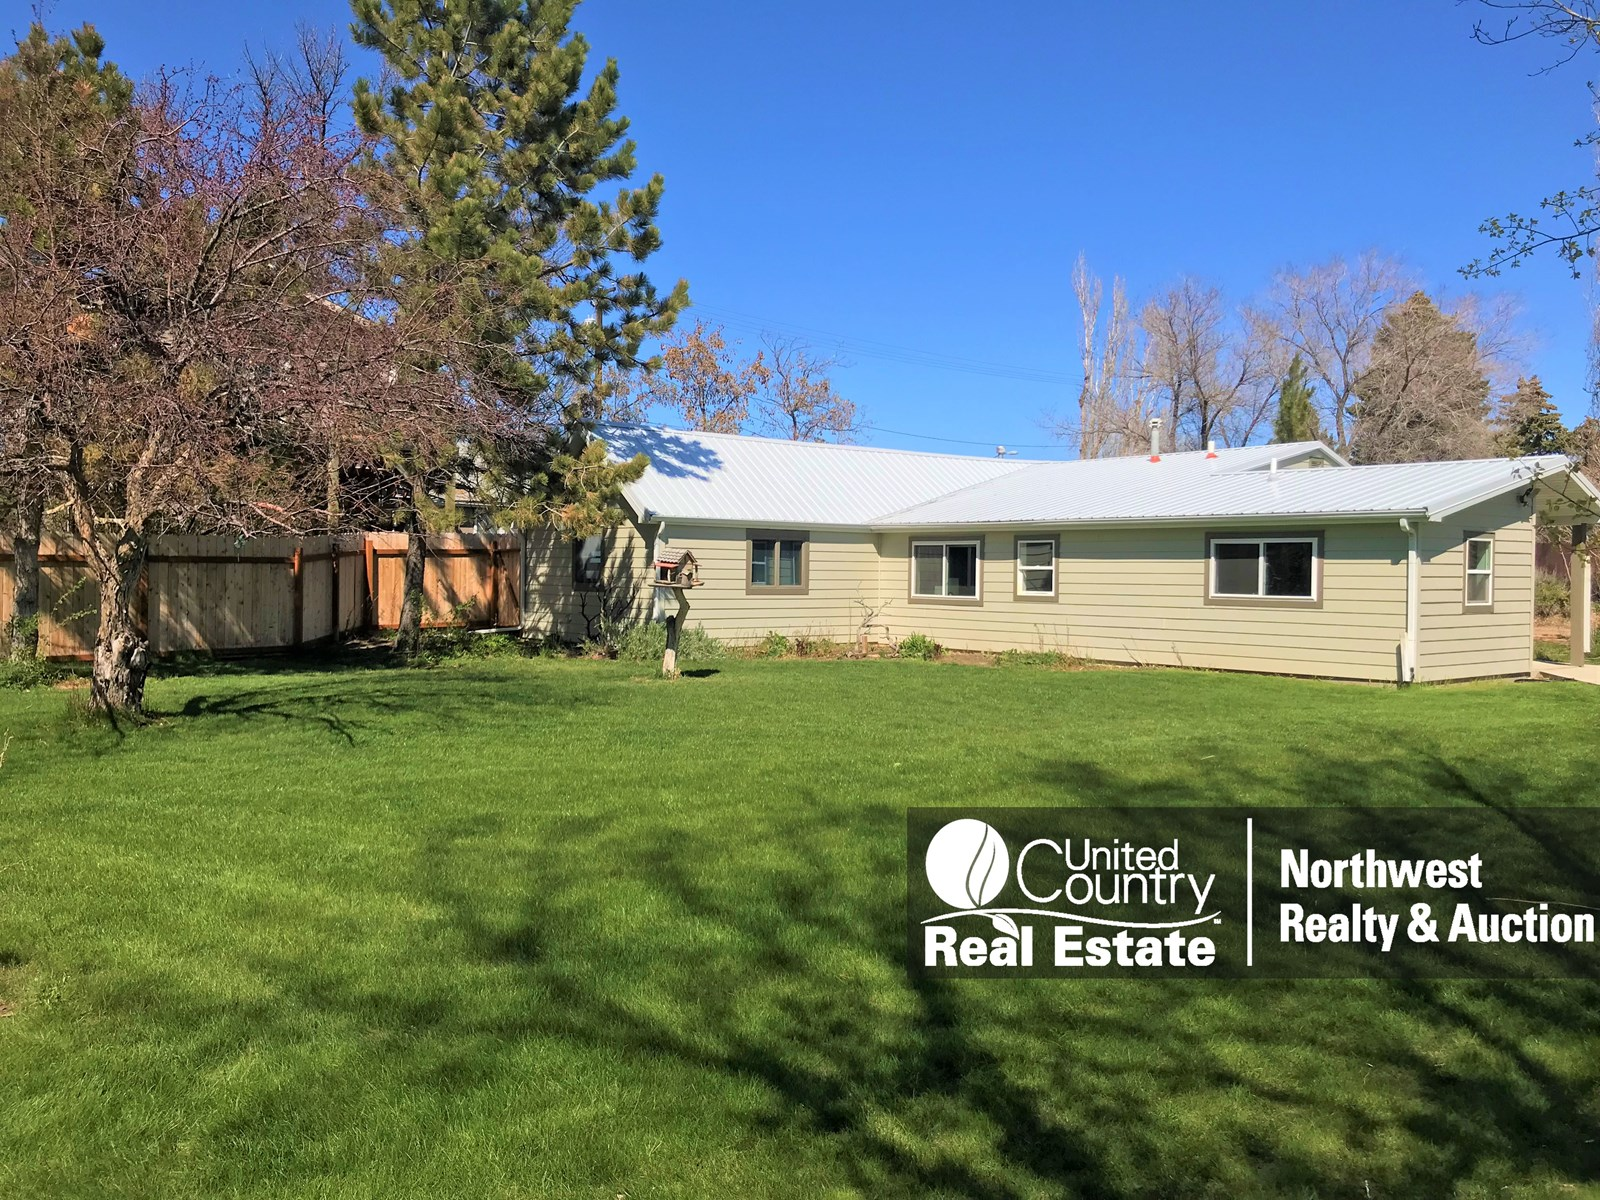 Country Home for Sale near School, Private Setting, Shop